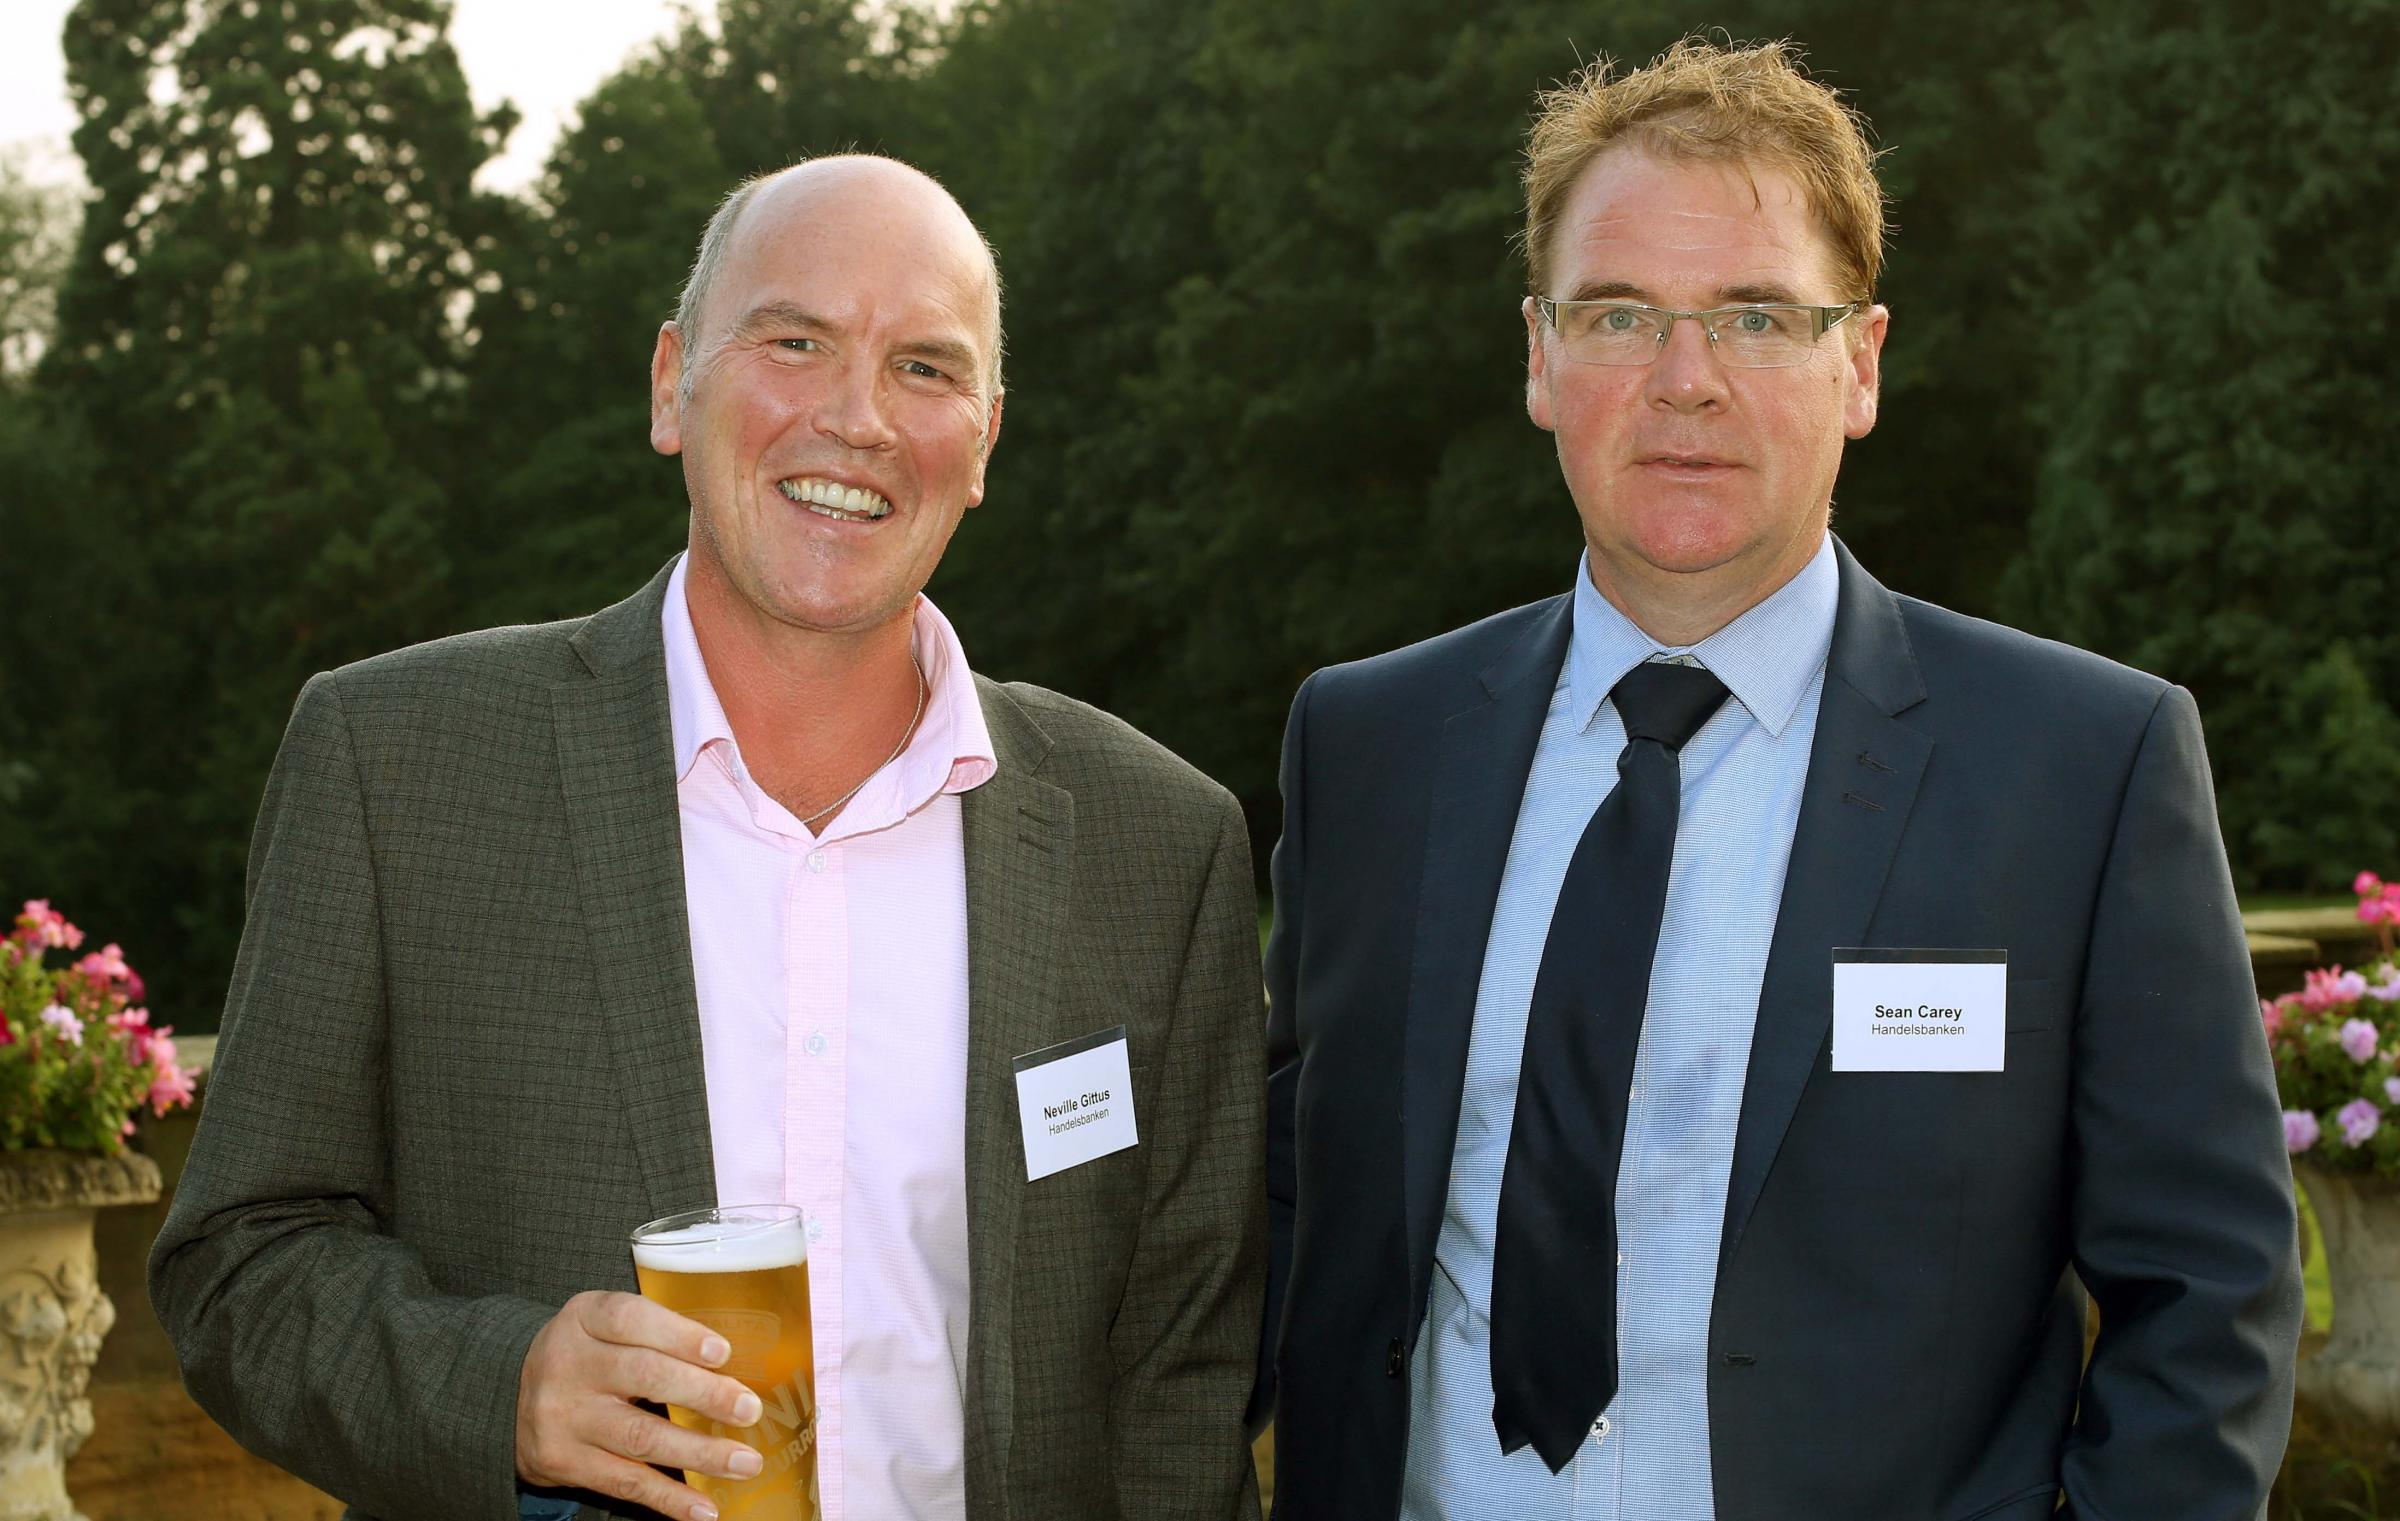 Jacksons Law Firm Anniversary - gallery - from Darlington and